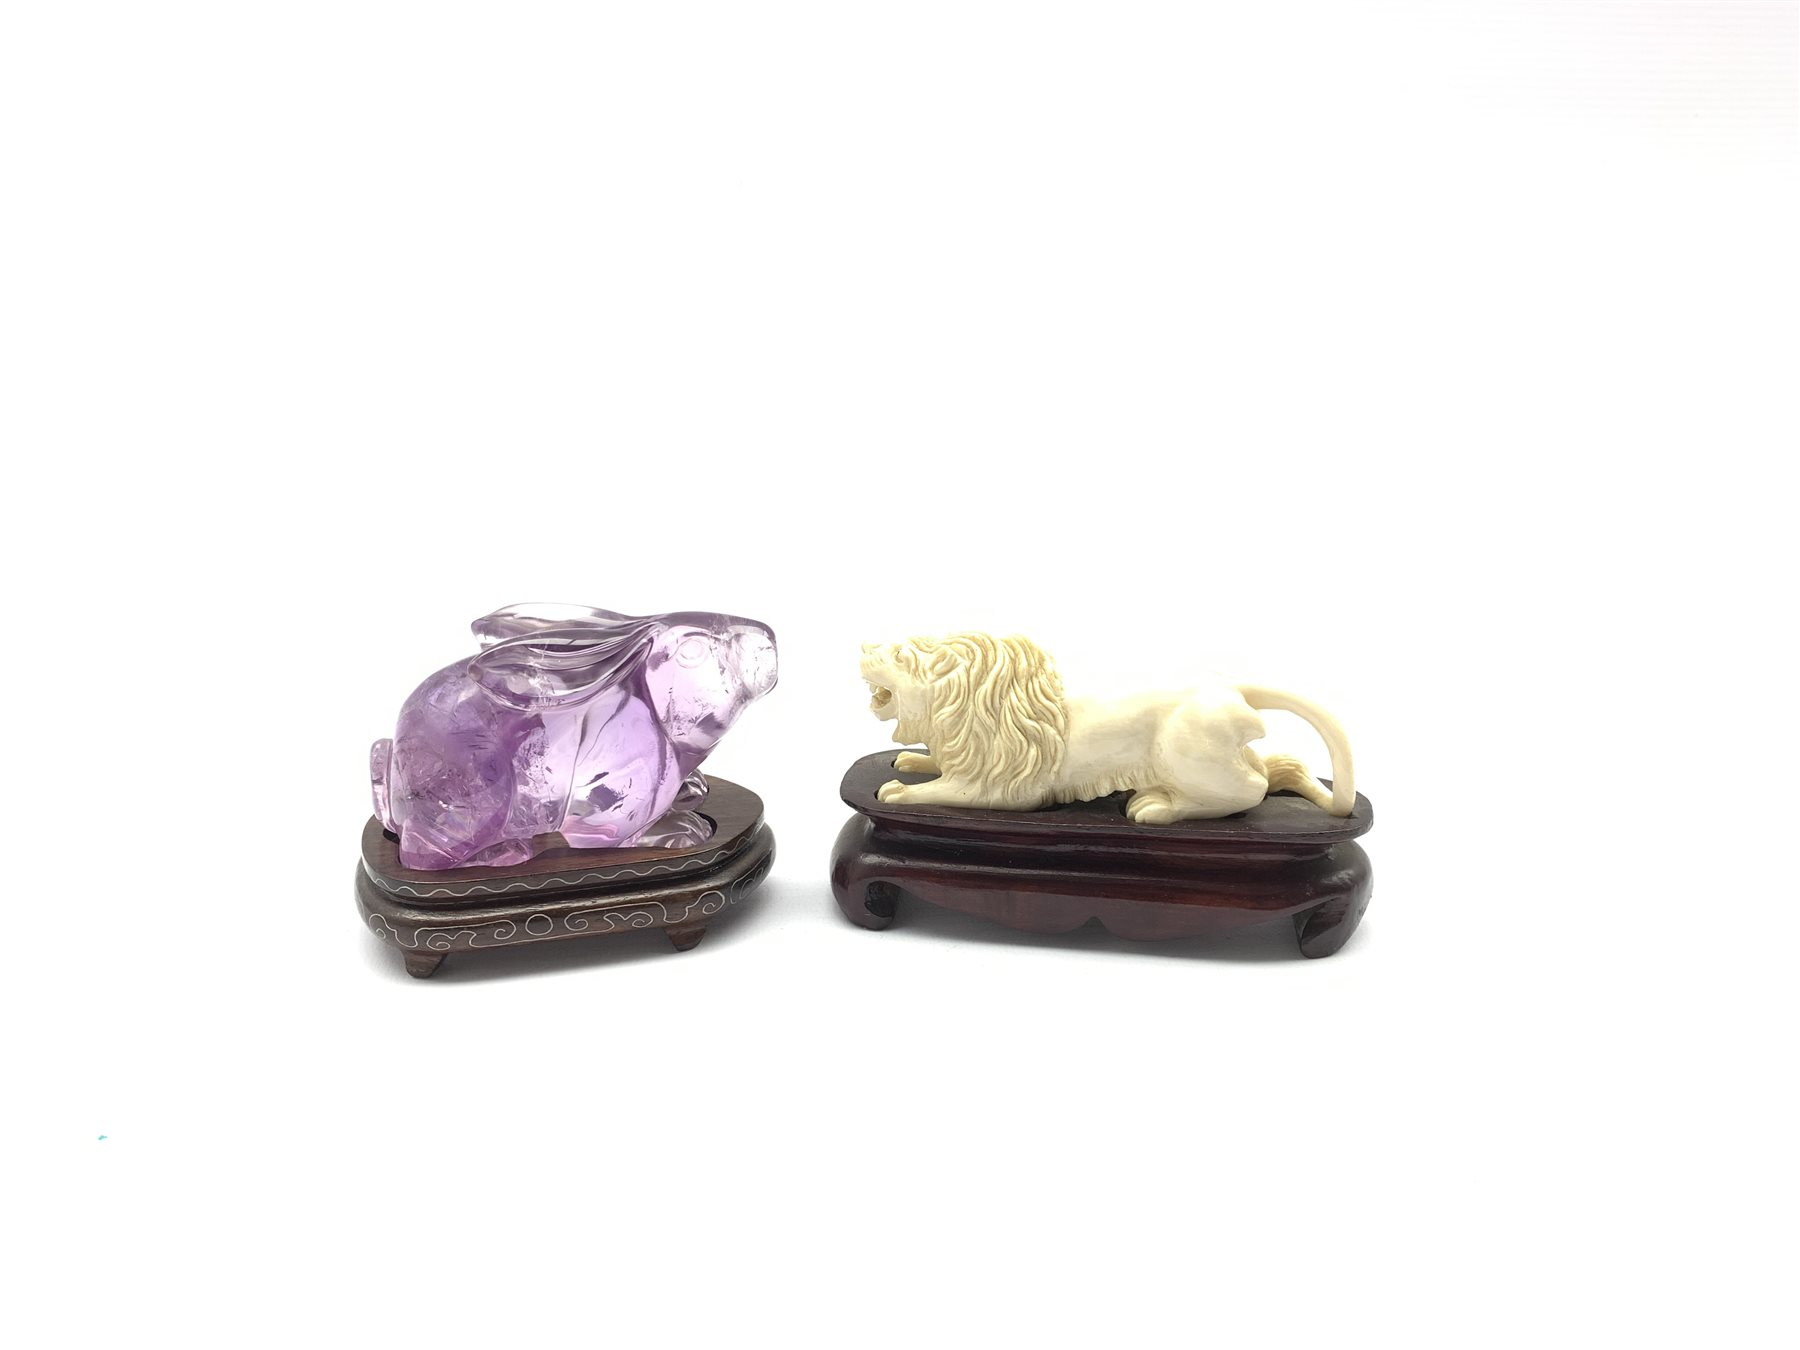 Oriental amethyst glass rabbit on a wooden stand W9cm and an early 20th century carved ivory figure - Image 3 of 11